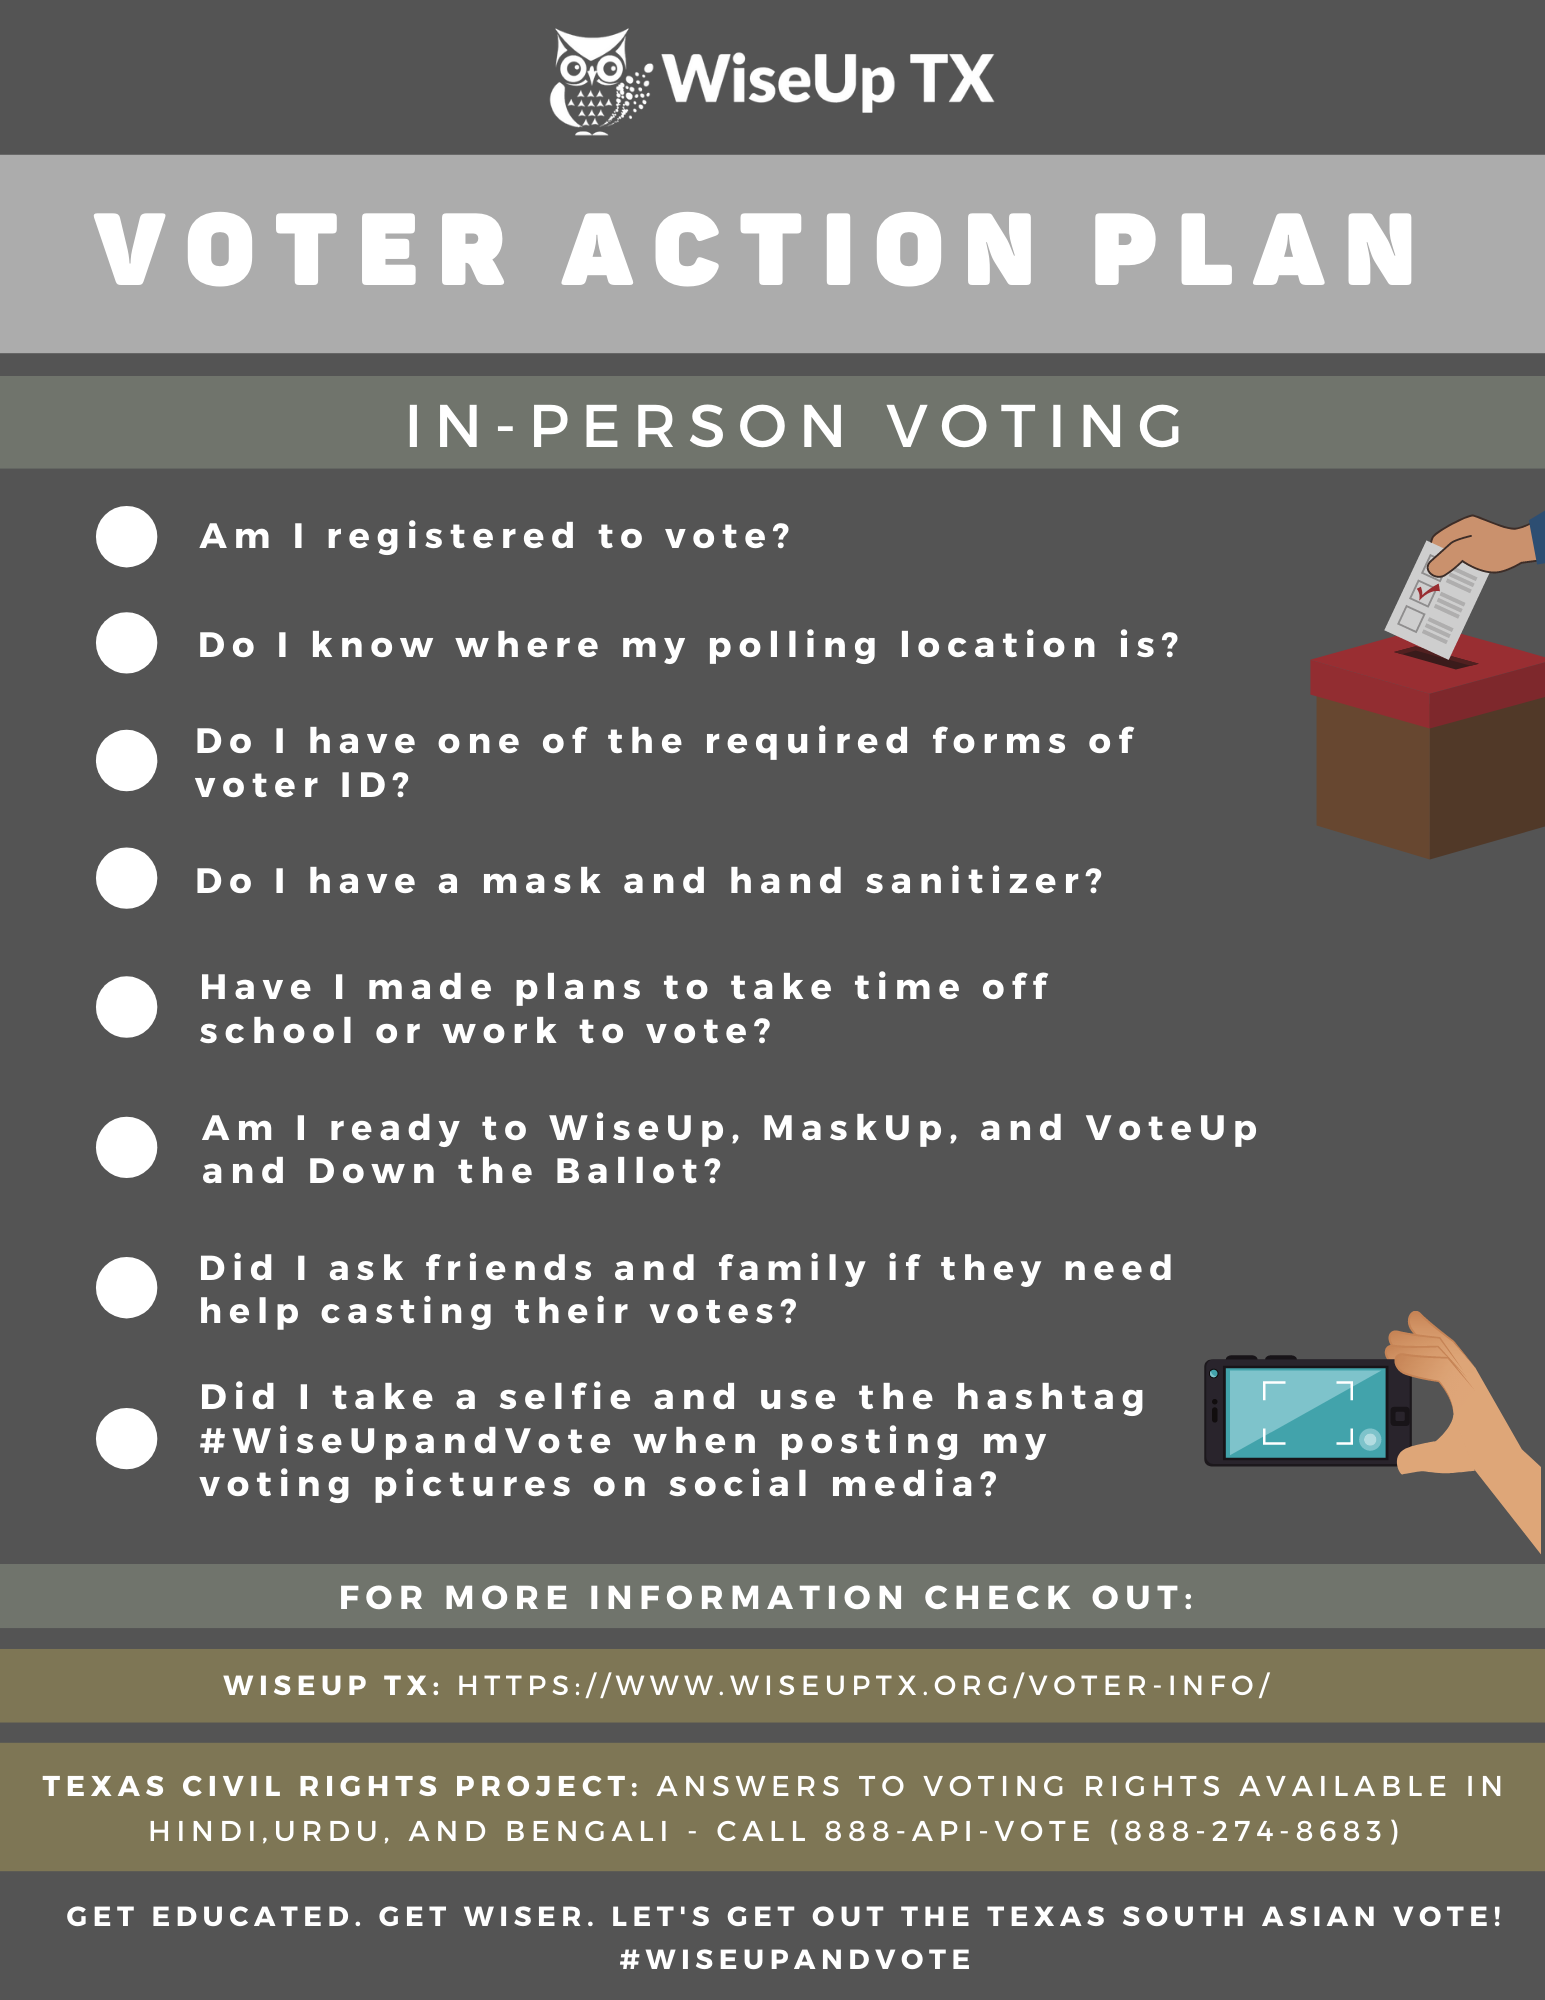 https://www.wiseuptx.org/wp-content/uploads/2020/10/Voter-Action-Plan_-in-person-voting.png